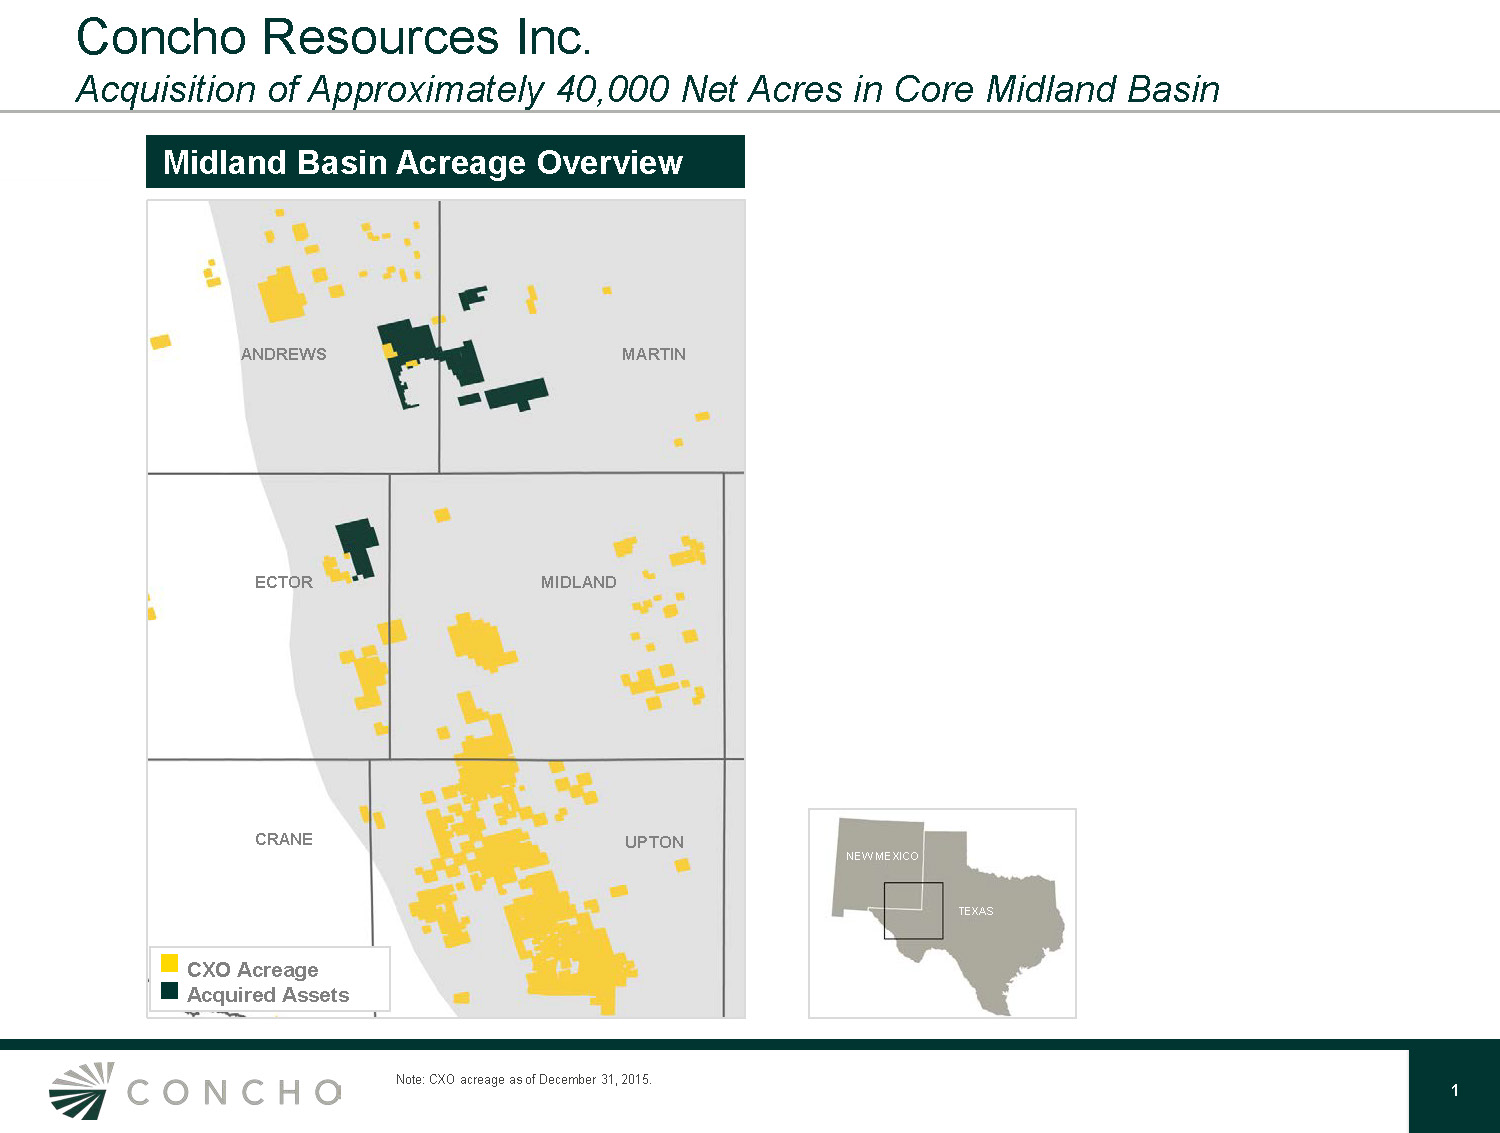 CXO-Acquires-Midland-Basin-Assets-(Map)